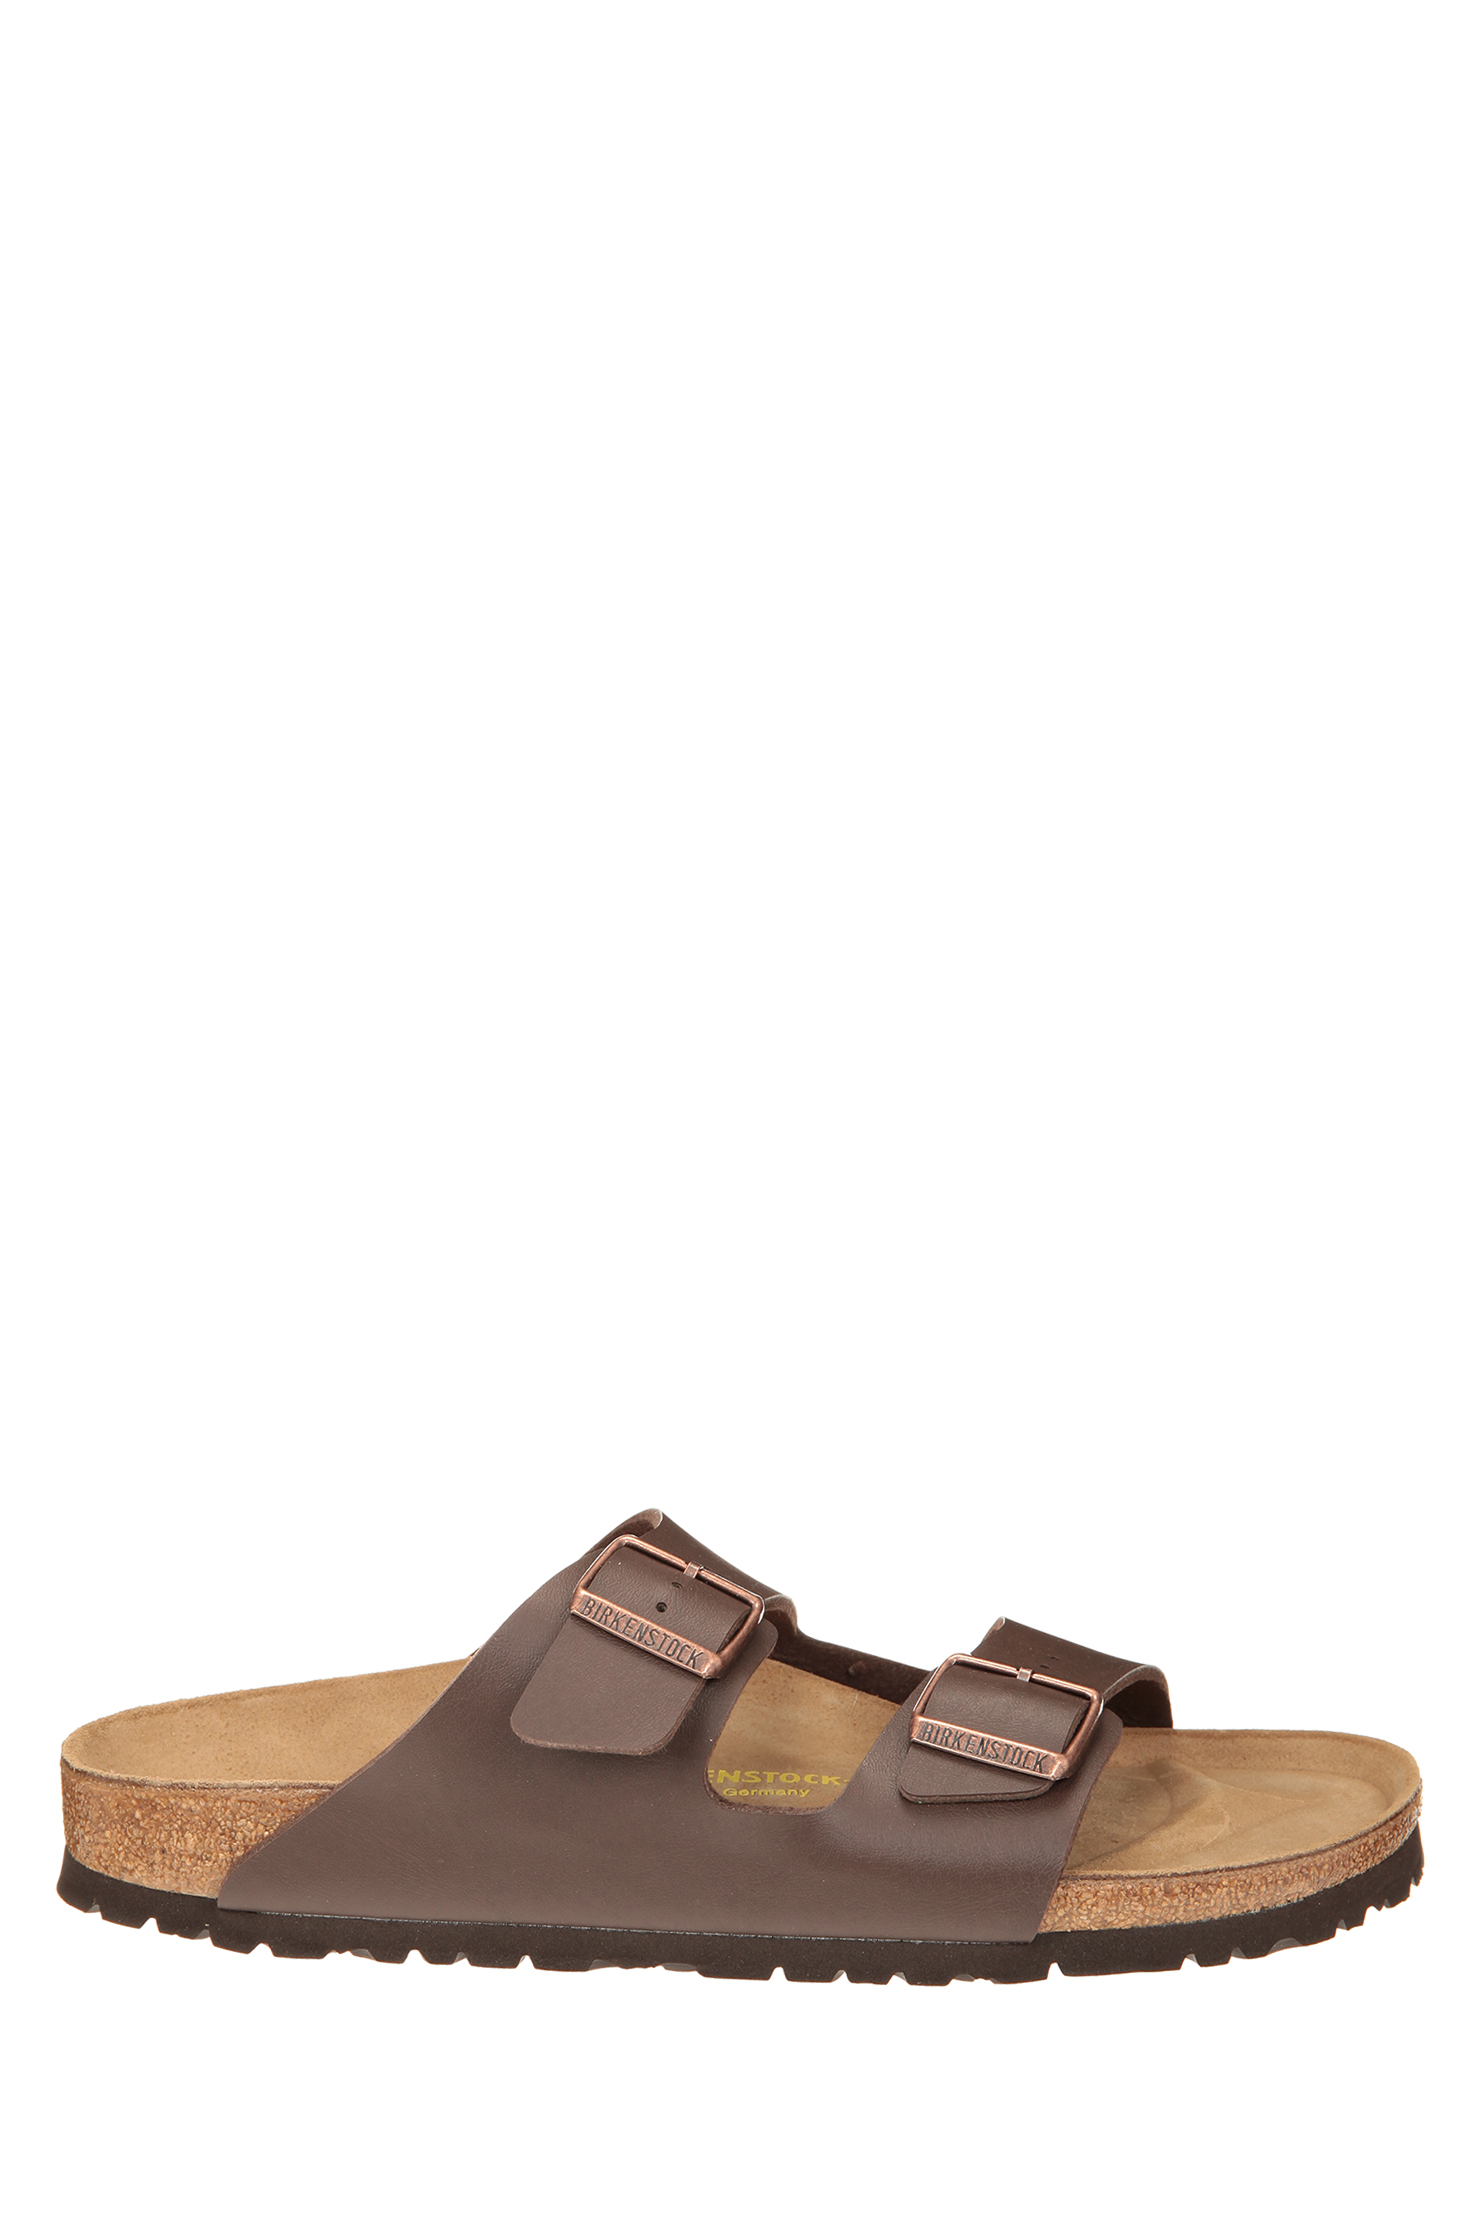 birkenstock flip flops espadrilles in brown for men lyst. Black Bedroom Furniture Sets. Home Design Ideas